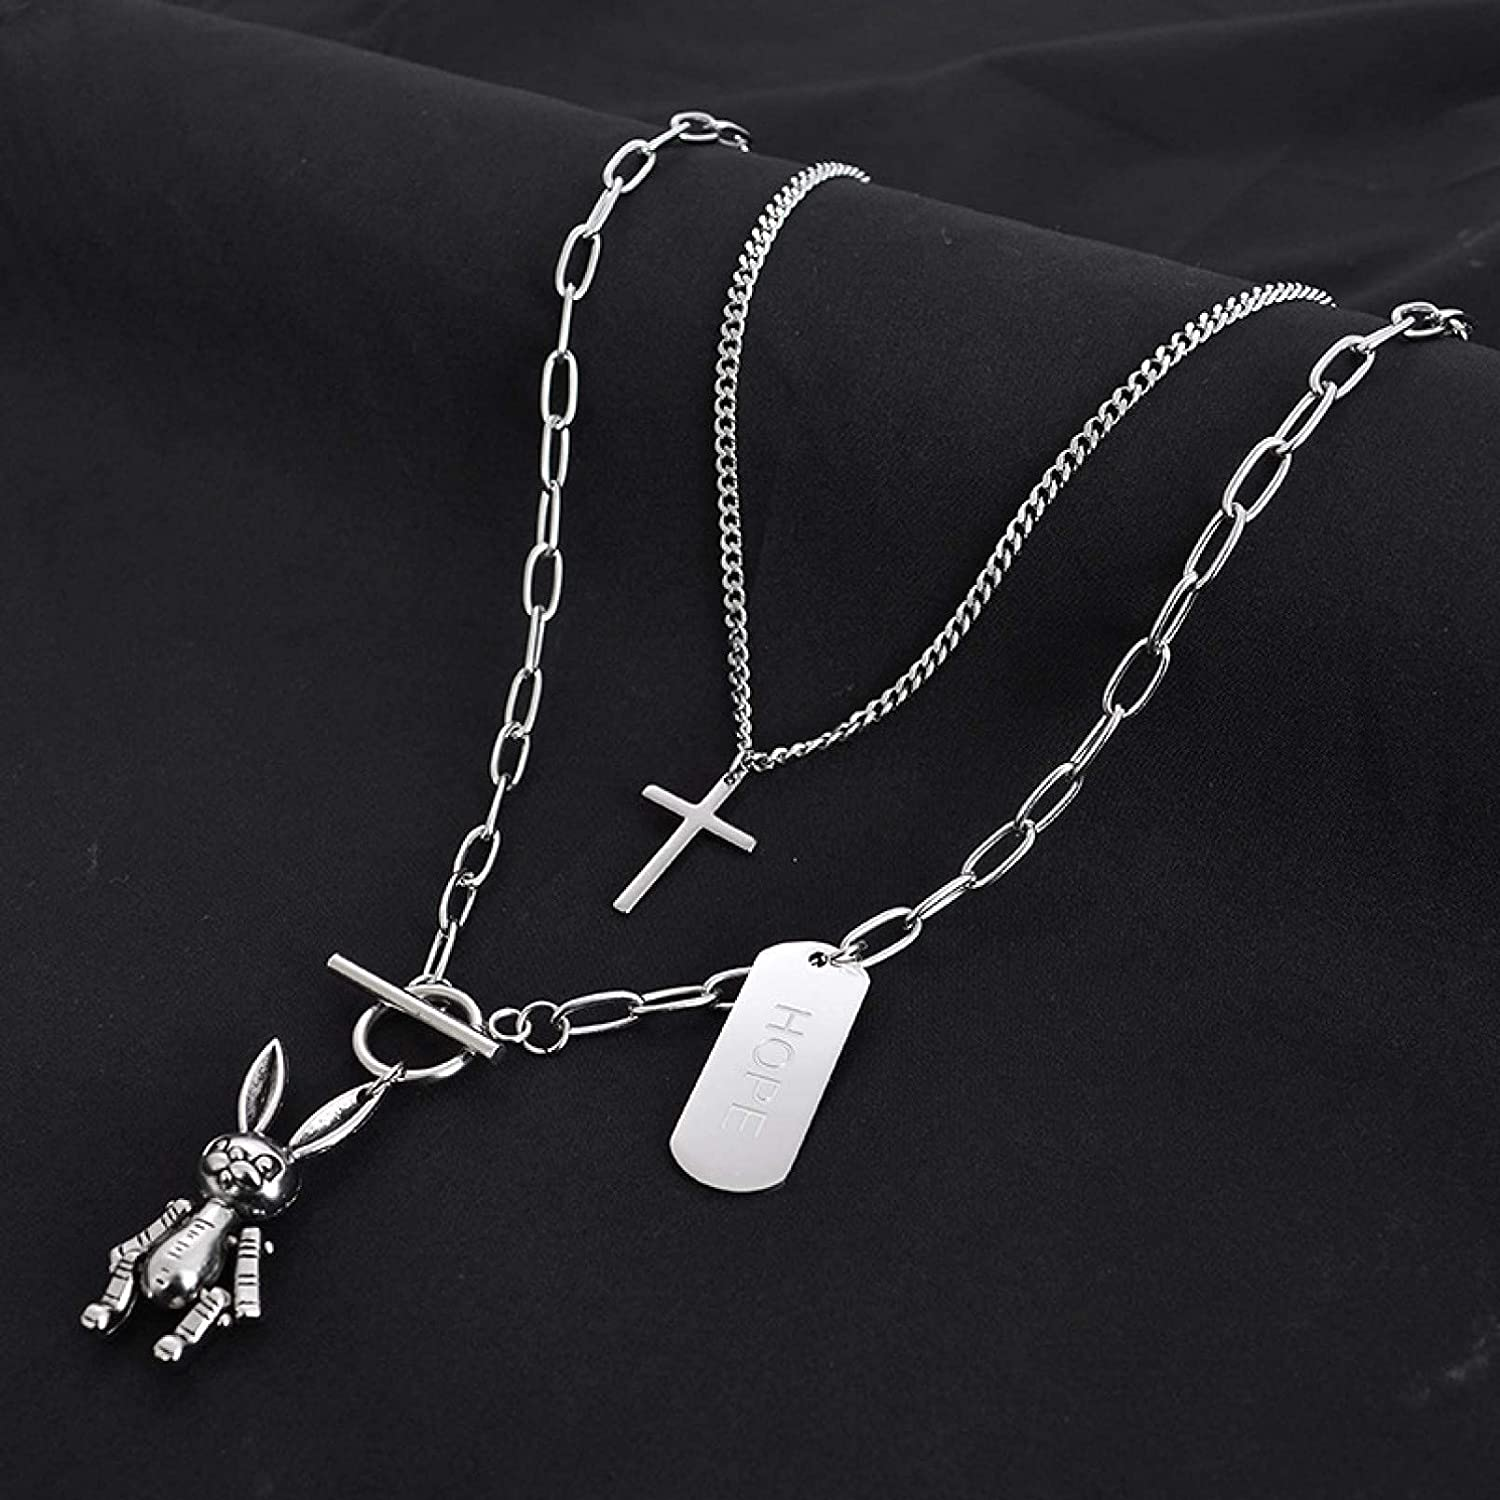 Ranking TOP6 Necklace sold out Pendant Jewellery New Titanium Chain Steel Sweater Rabb